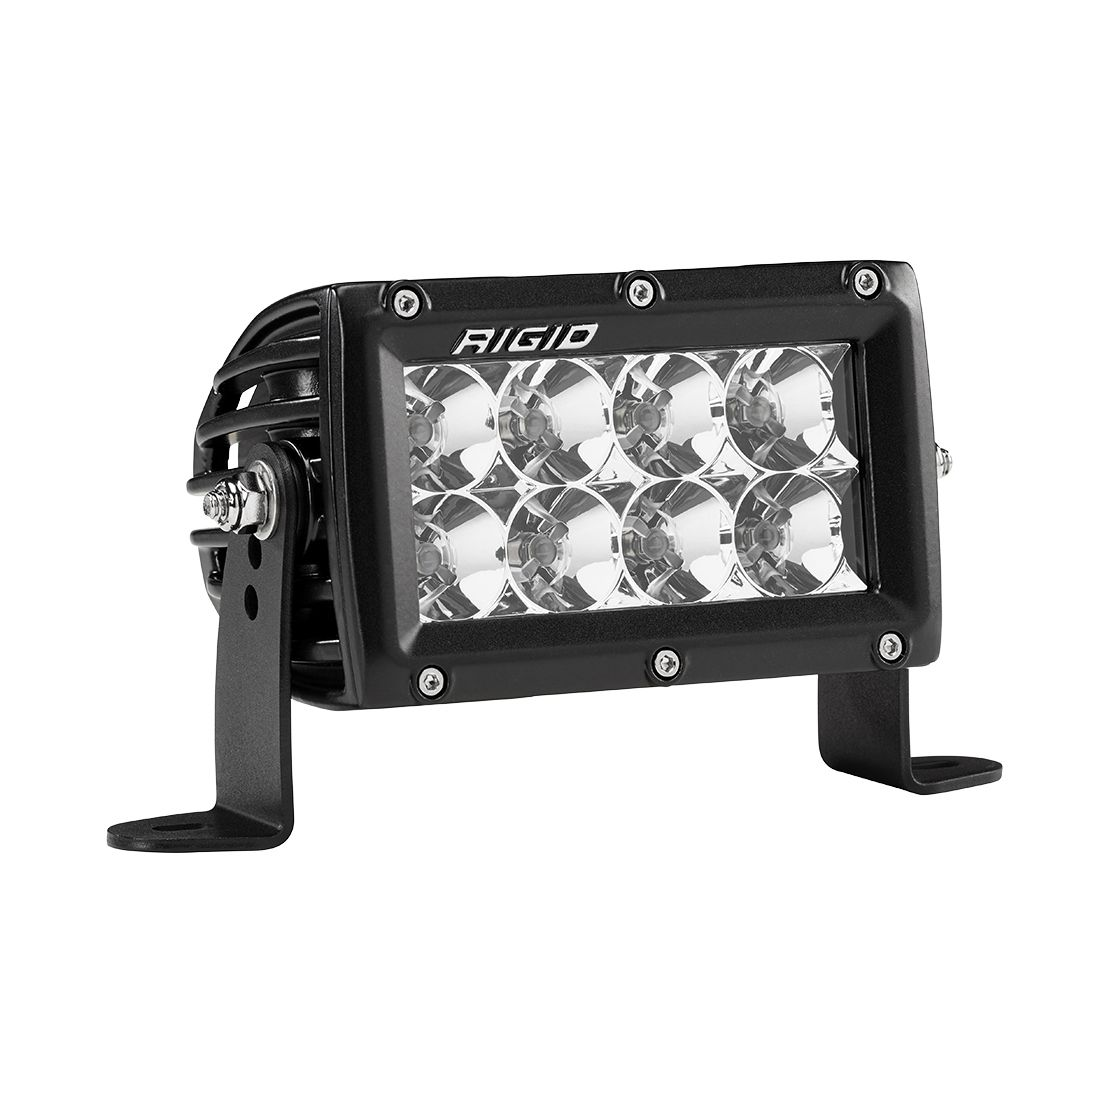 RIGID 104113 4 Inch Flood Light E-Series Pro, Each